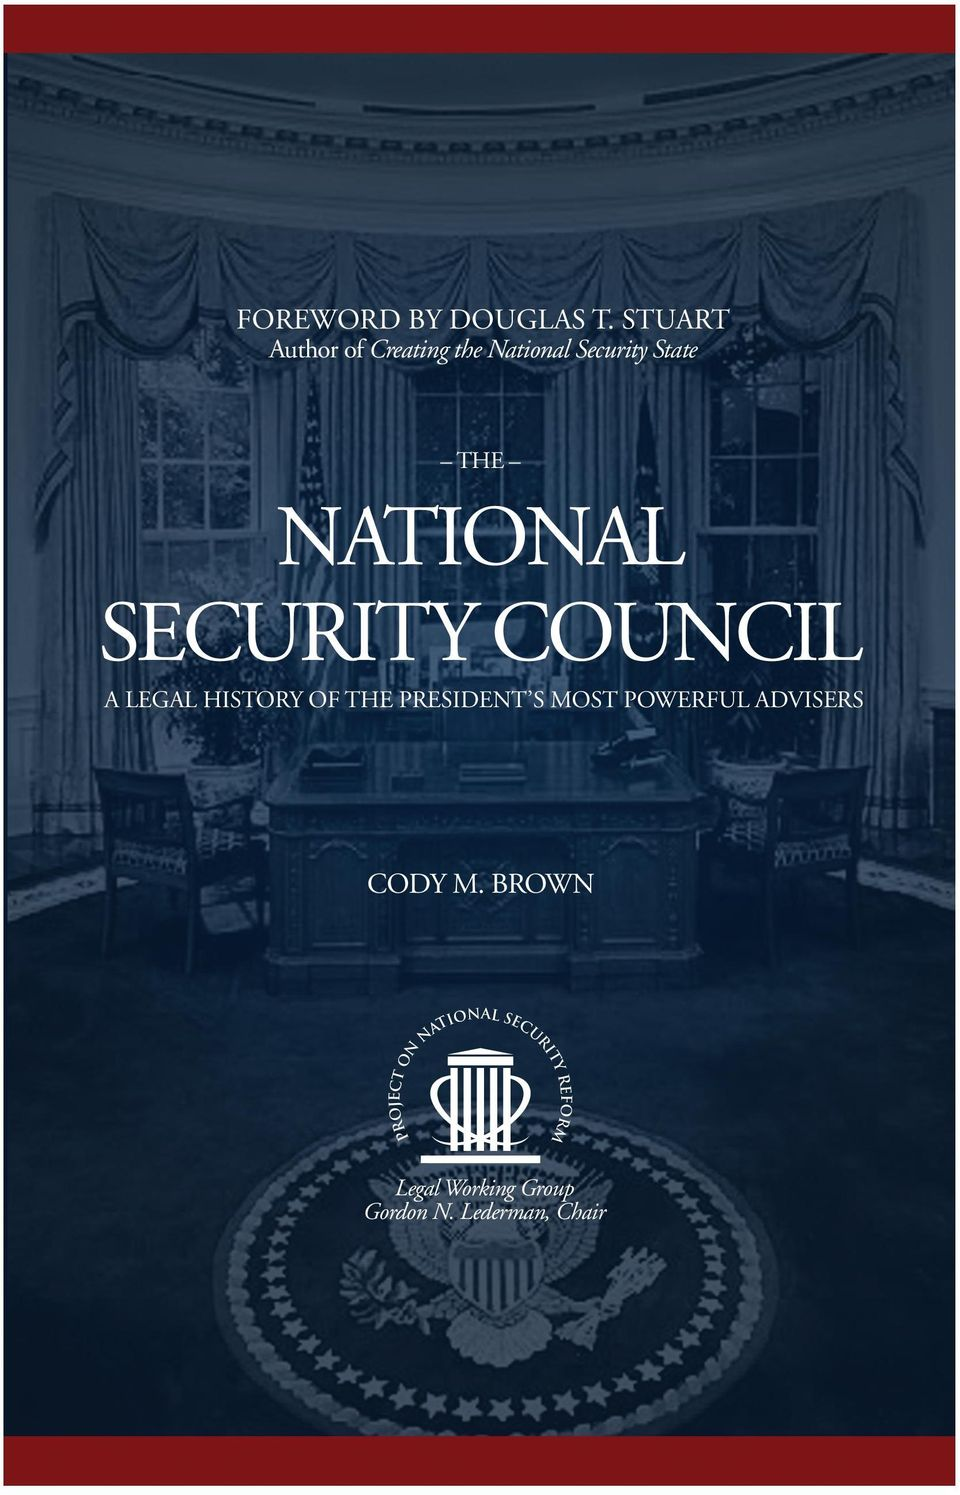 evolution of the form and function of the National Security Council since its creation that will inform an incoming administration s early decisions regarding the optimal role of the NSC.... Dr.